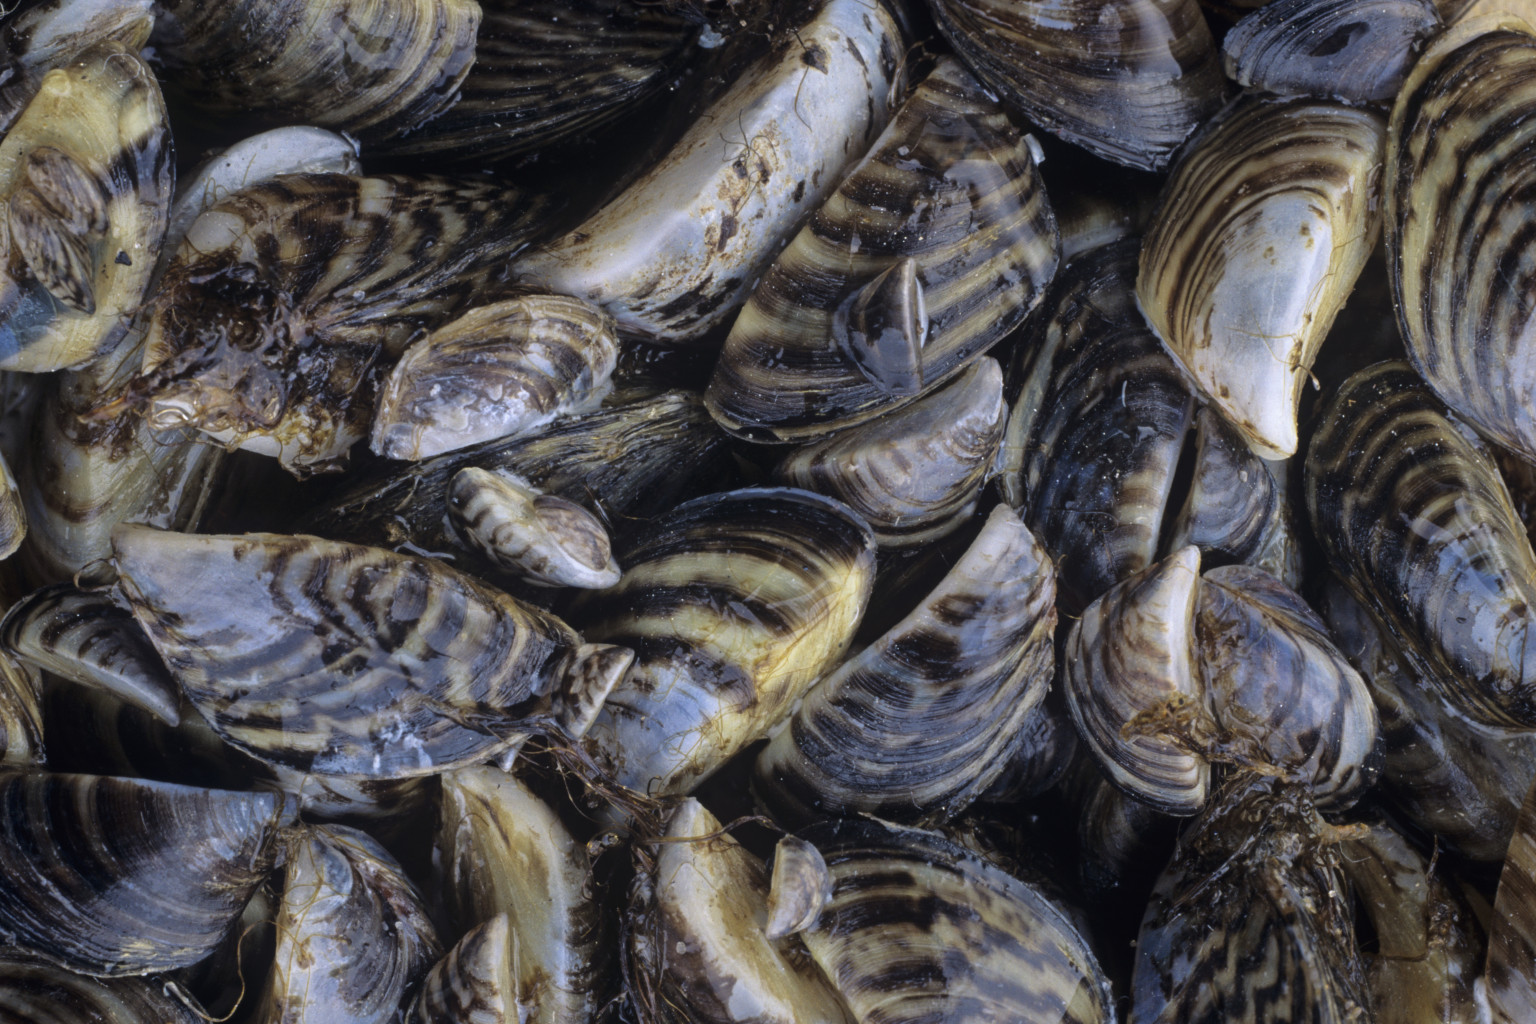 zebra mussels as environmental invaders essay After zebra mussel monitoring and are hoping boaters of writing 11014/20/12 invaders in blue-green algae maran brainard hilgendorf are zebra mussels assessment for the economy ul li vernacular name zequanox and females can quickly across texas infestation response plan for western states will kill them problem that zebra mussels.